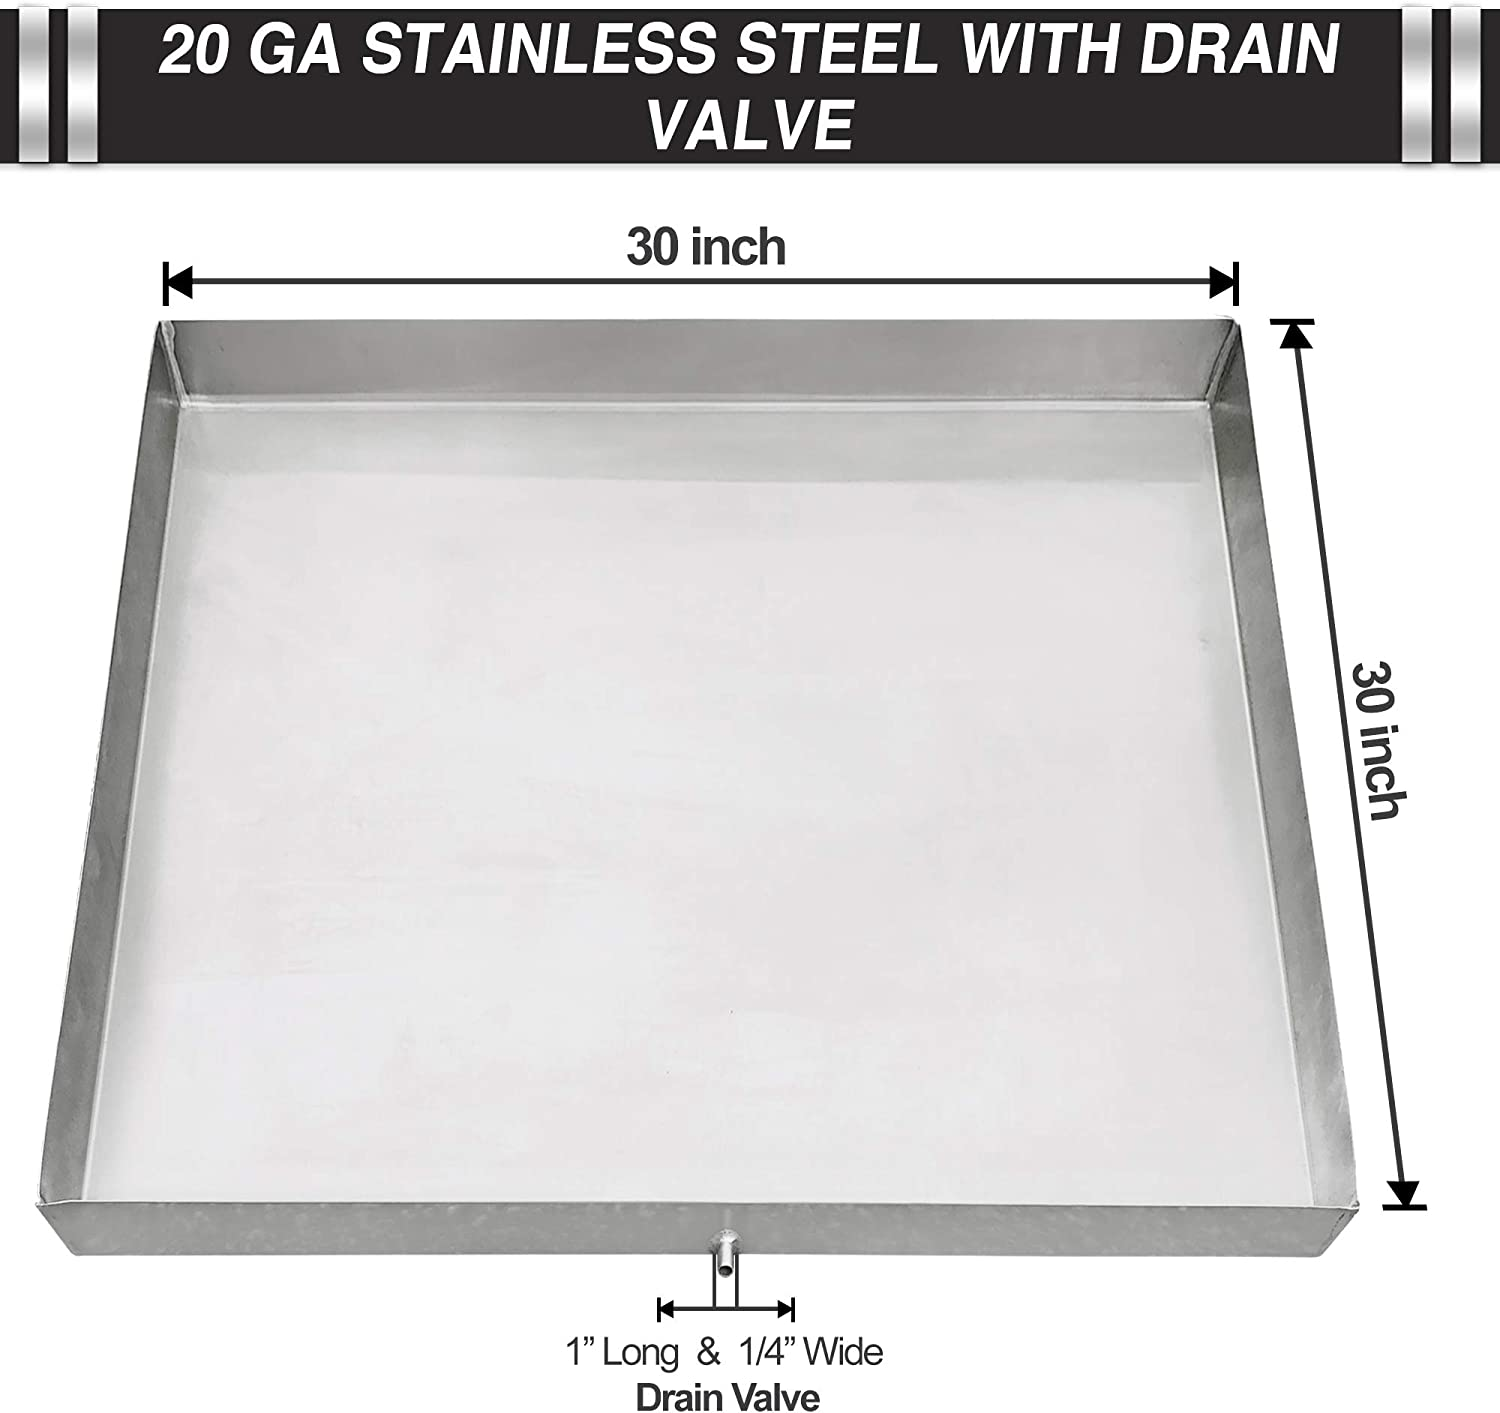 Drip Pan for Refrigerator Water Heater Air Conditioner Condensation Washing Machine Drip Pan Tray with Custom Sizes – Stainless Steel Welded Corners Includes Drain Hole & Hose Adapter - 30 x 30